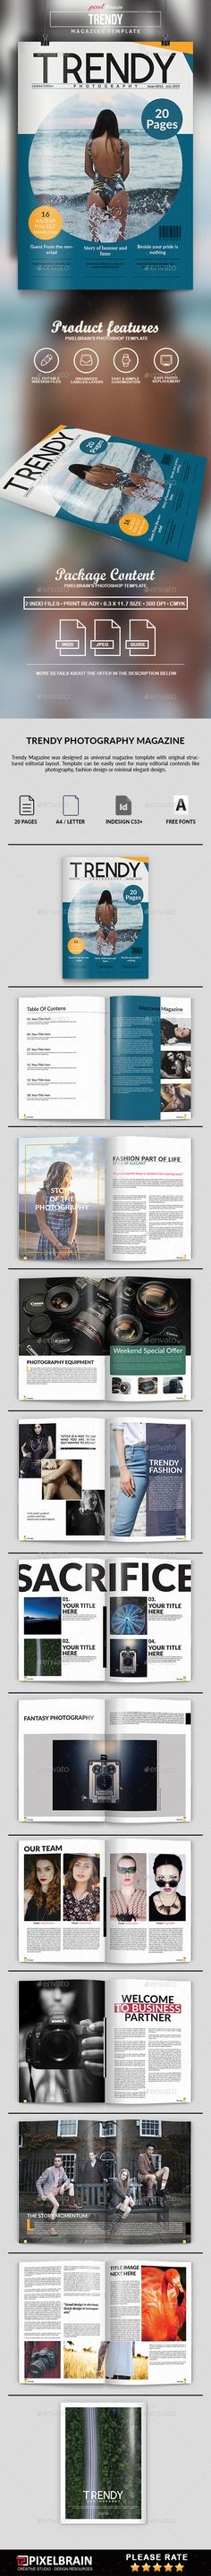 Multipurpose Magazine Template InDesign INDD - 30 Pages A4  US - fashion design brochure template